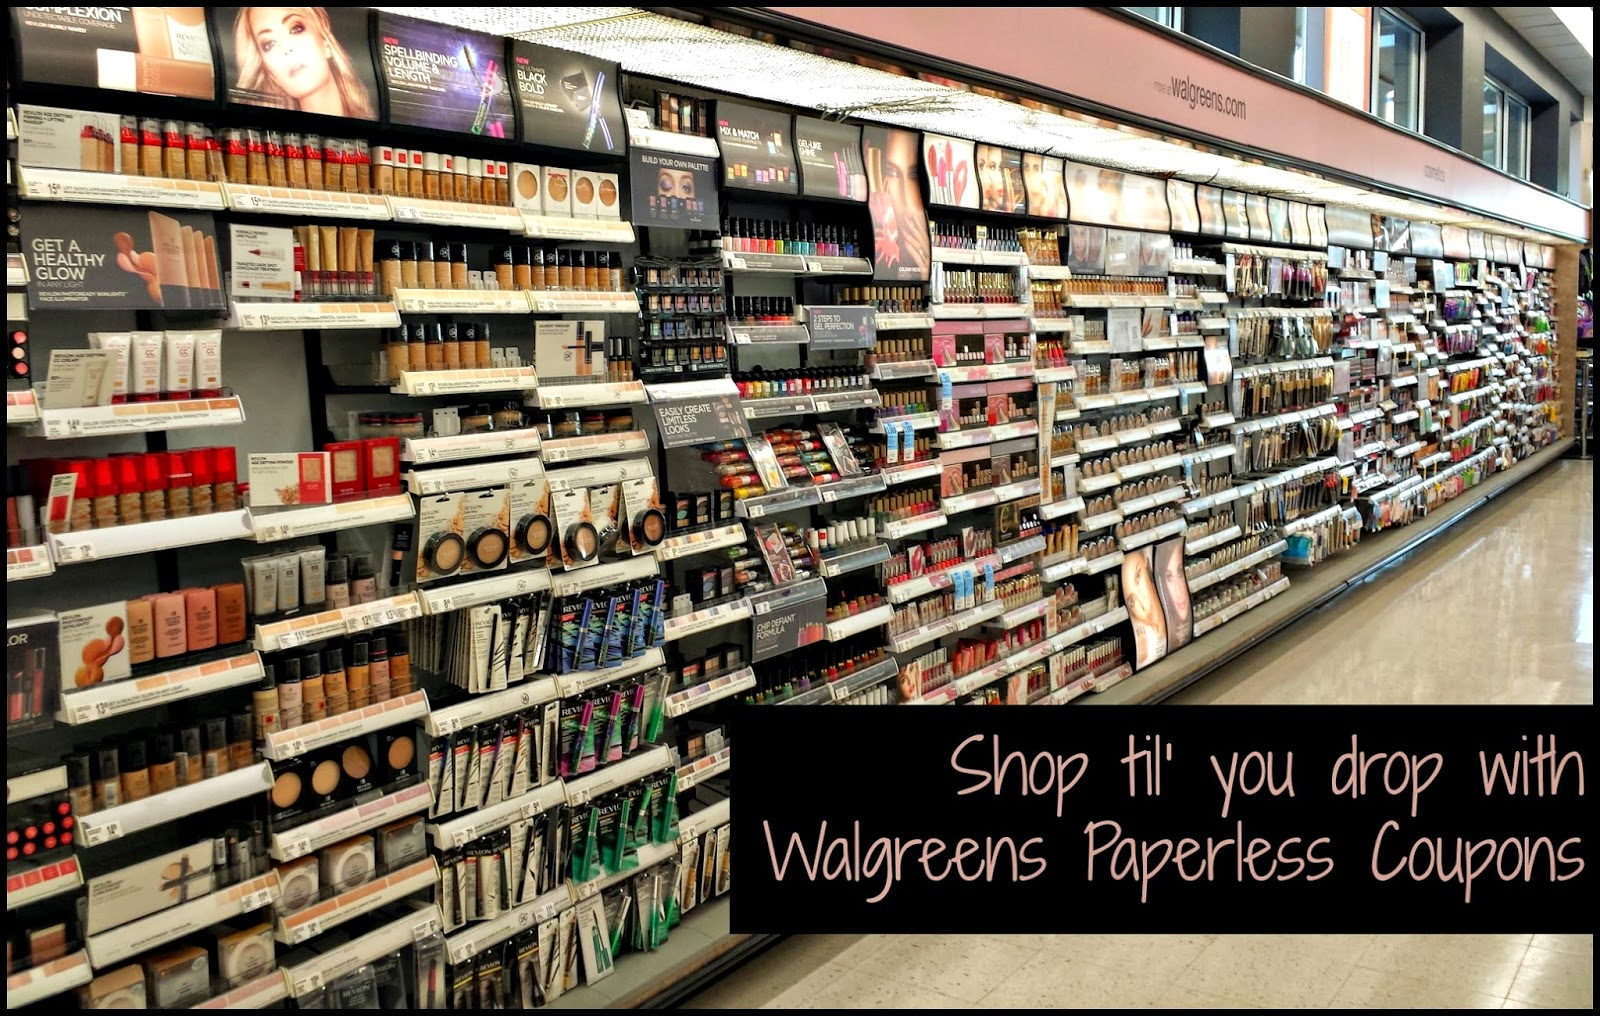 Hassle-free Shopping with Walgreens Paperless Coupons | #ad #walgreenspaperless #collectivebias